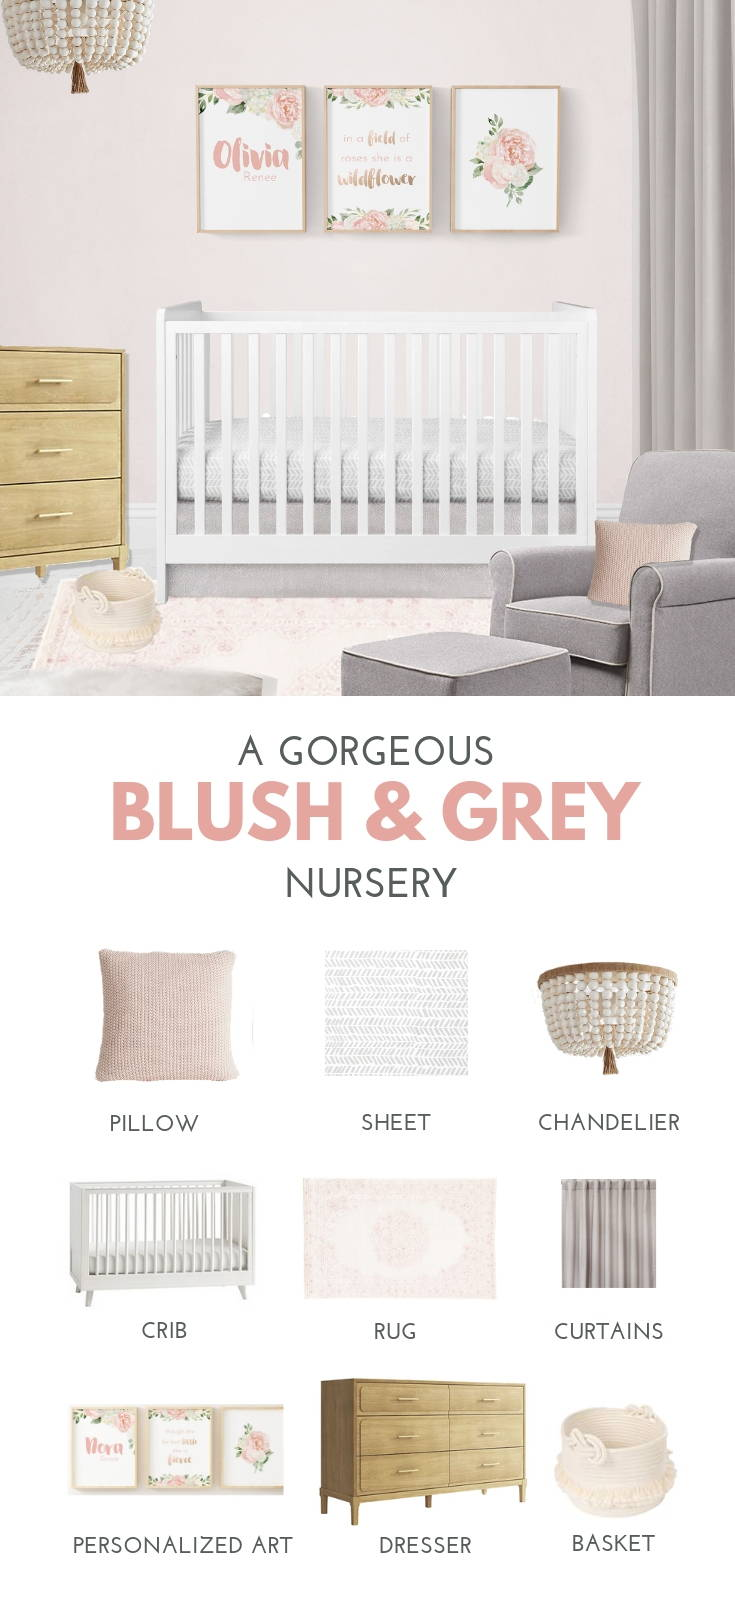 Blush and grey girl's nursery idea